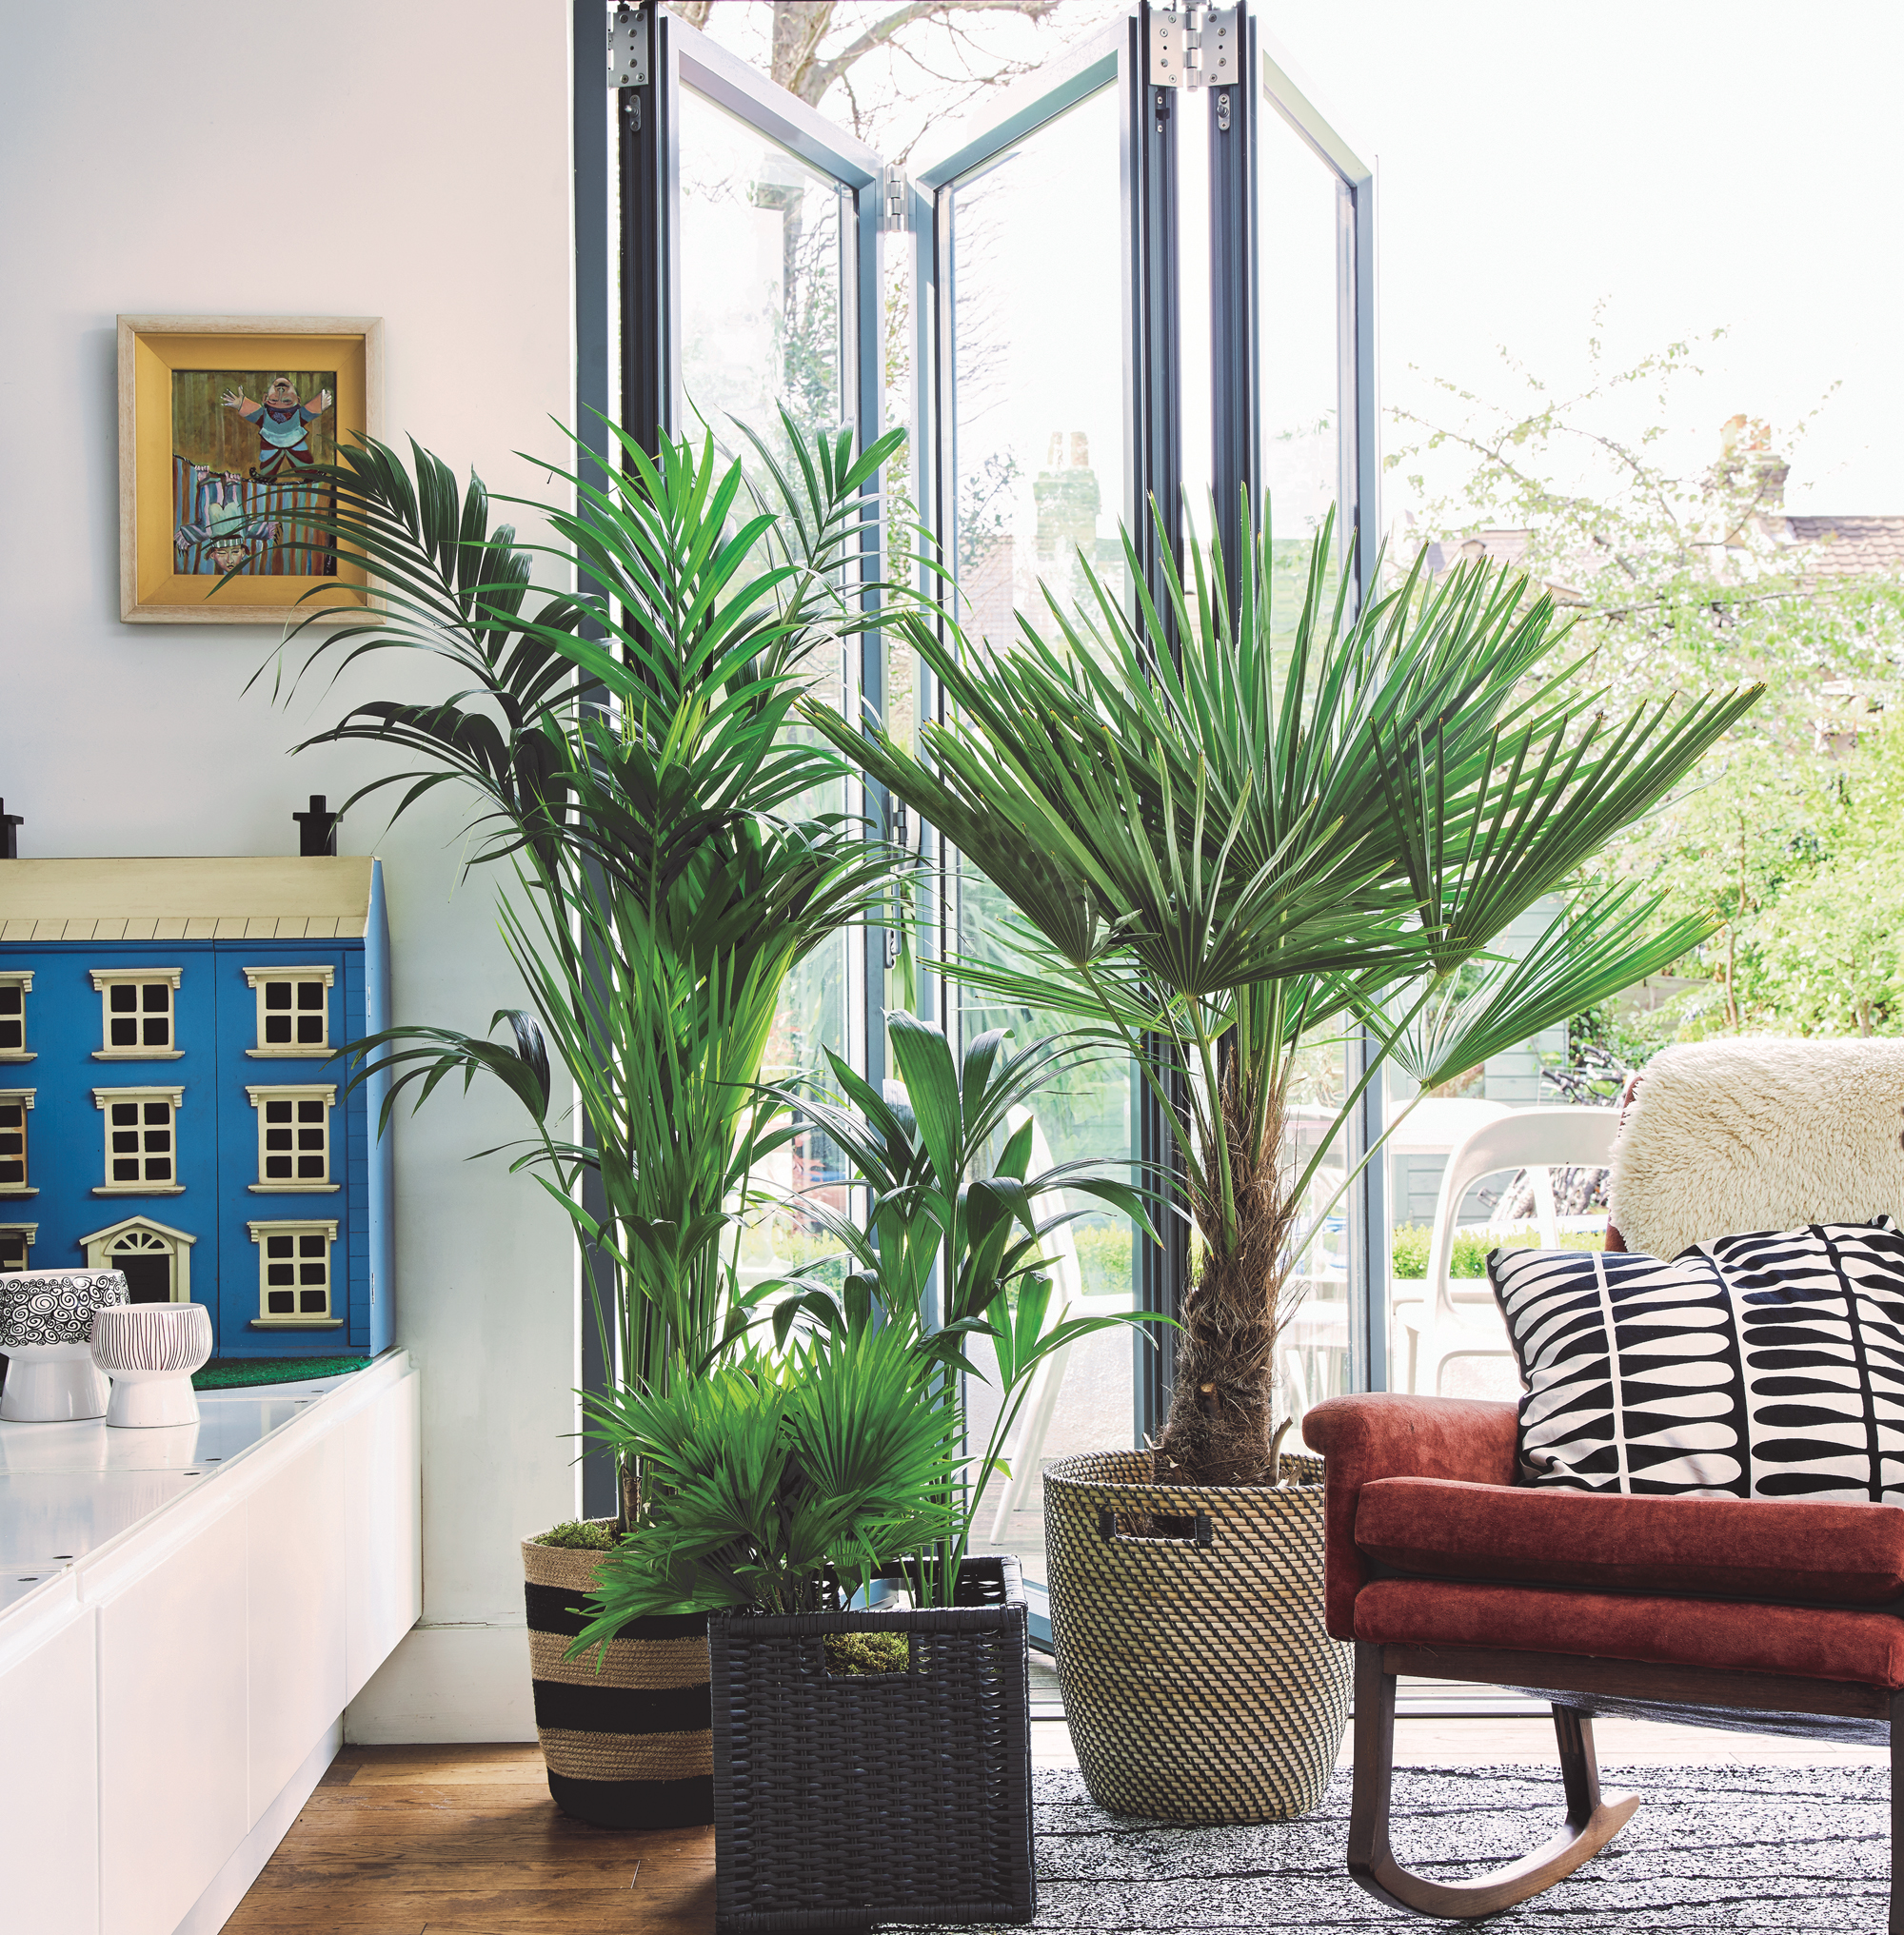 Three containers of palms make an eye-catching display and blur the boundary between the indoors and outdoors. (from left) Kentia palm; Washington palm; Kentia palm and Chinese Windmill palm. Room featured in At Home With Plants (Nick Pope/Mitchell Beazley/PA)